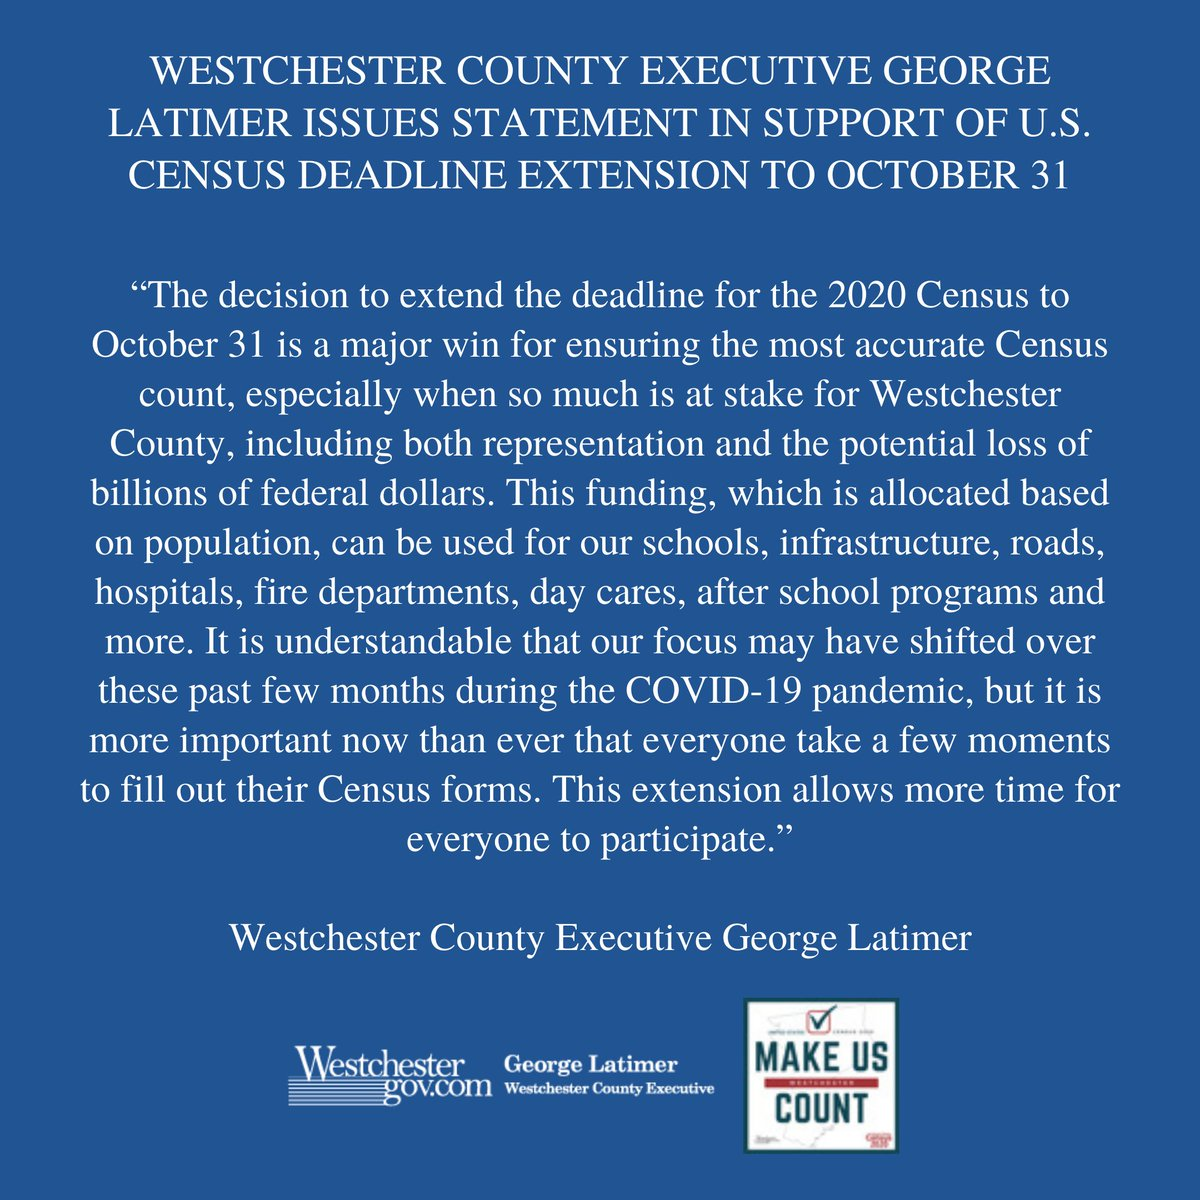 Westchester County Executive George Latimer issues statement in support of the 2020 Census Deadline Extension to October 31